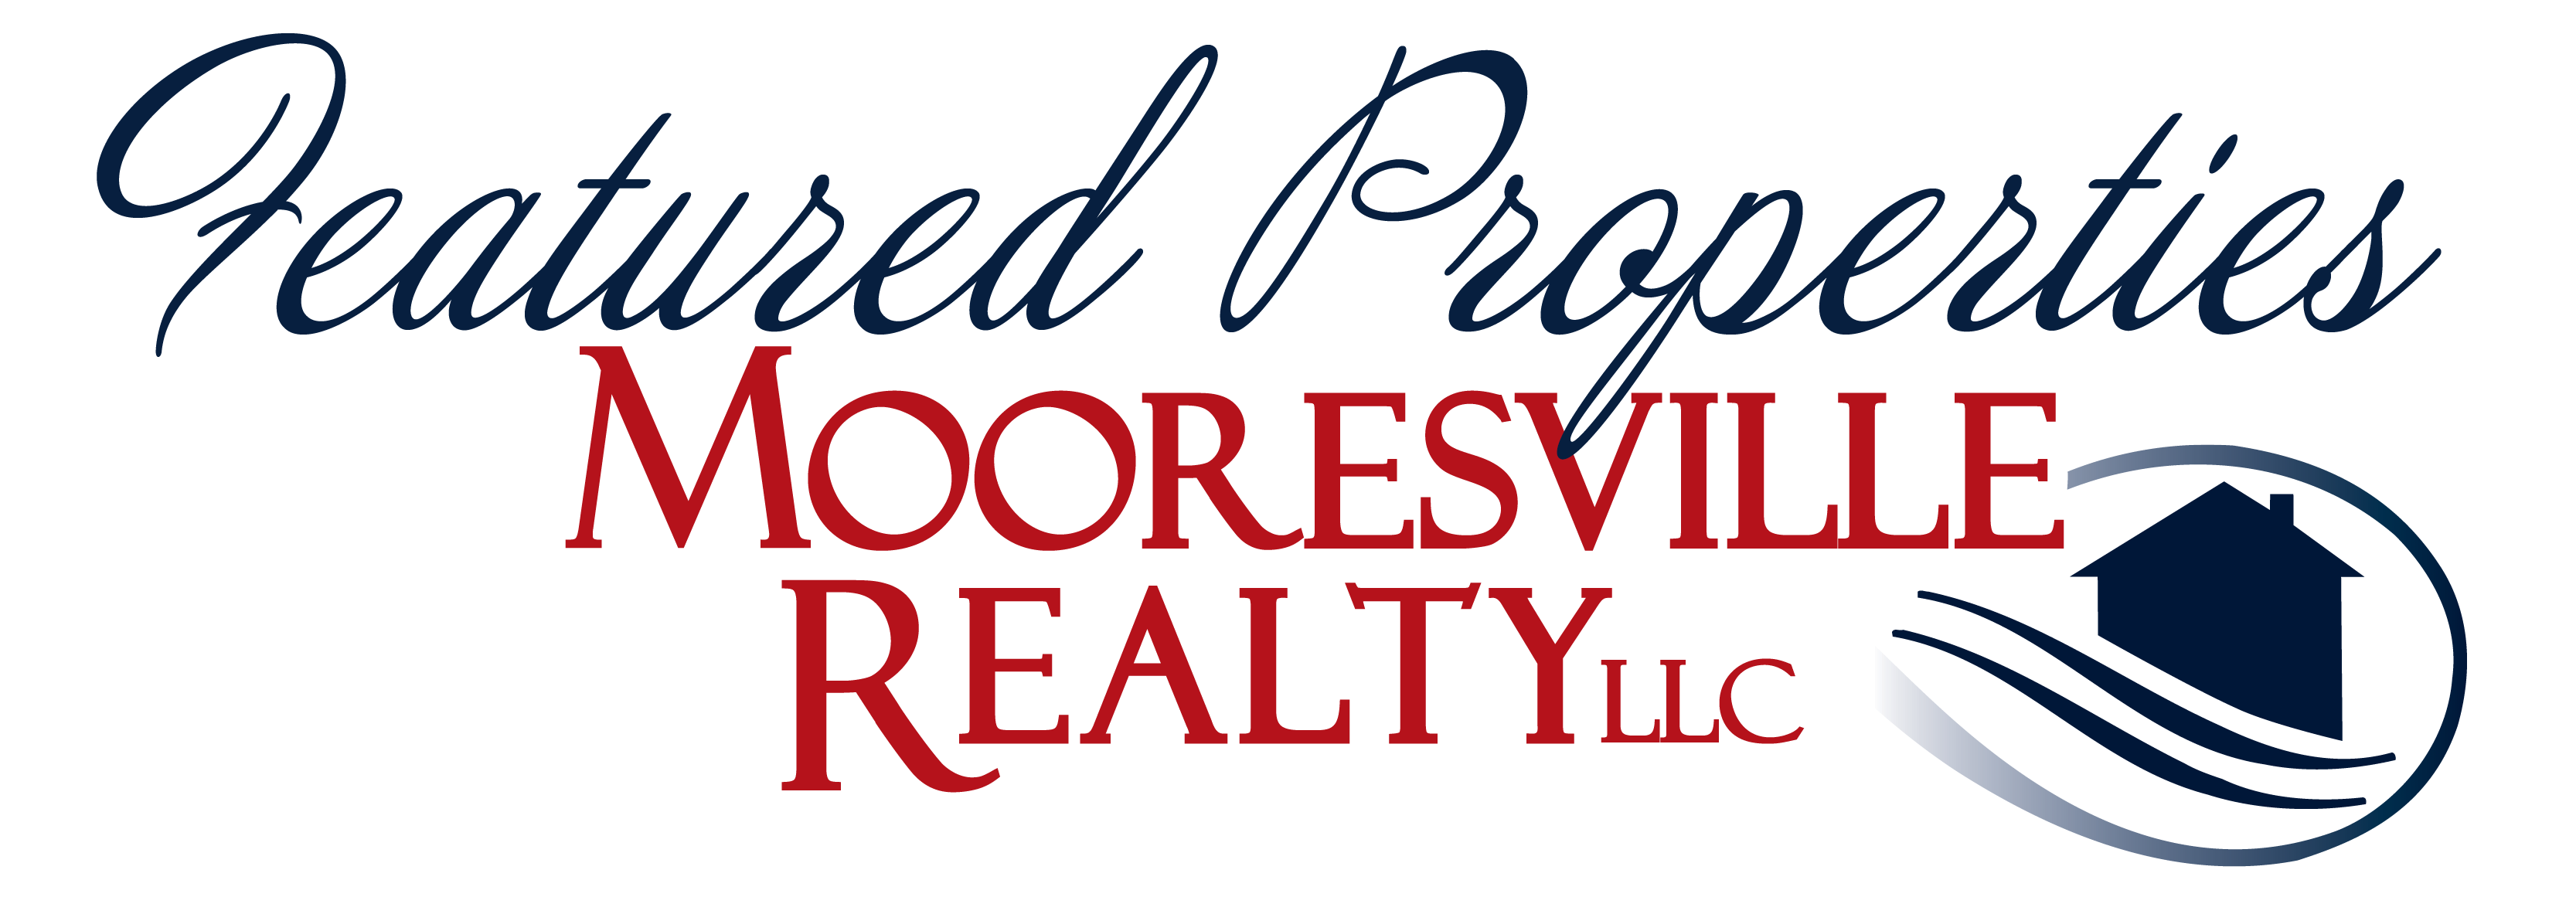 Mooresville Realty - Lake Norman Real Estate